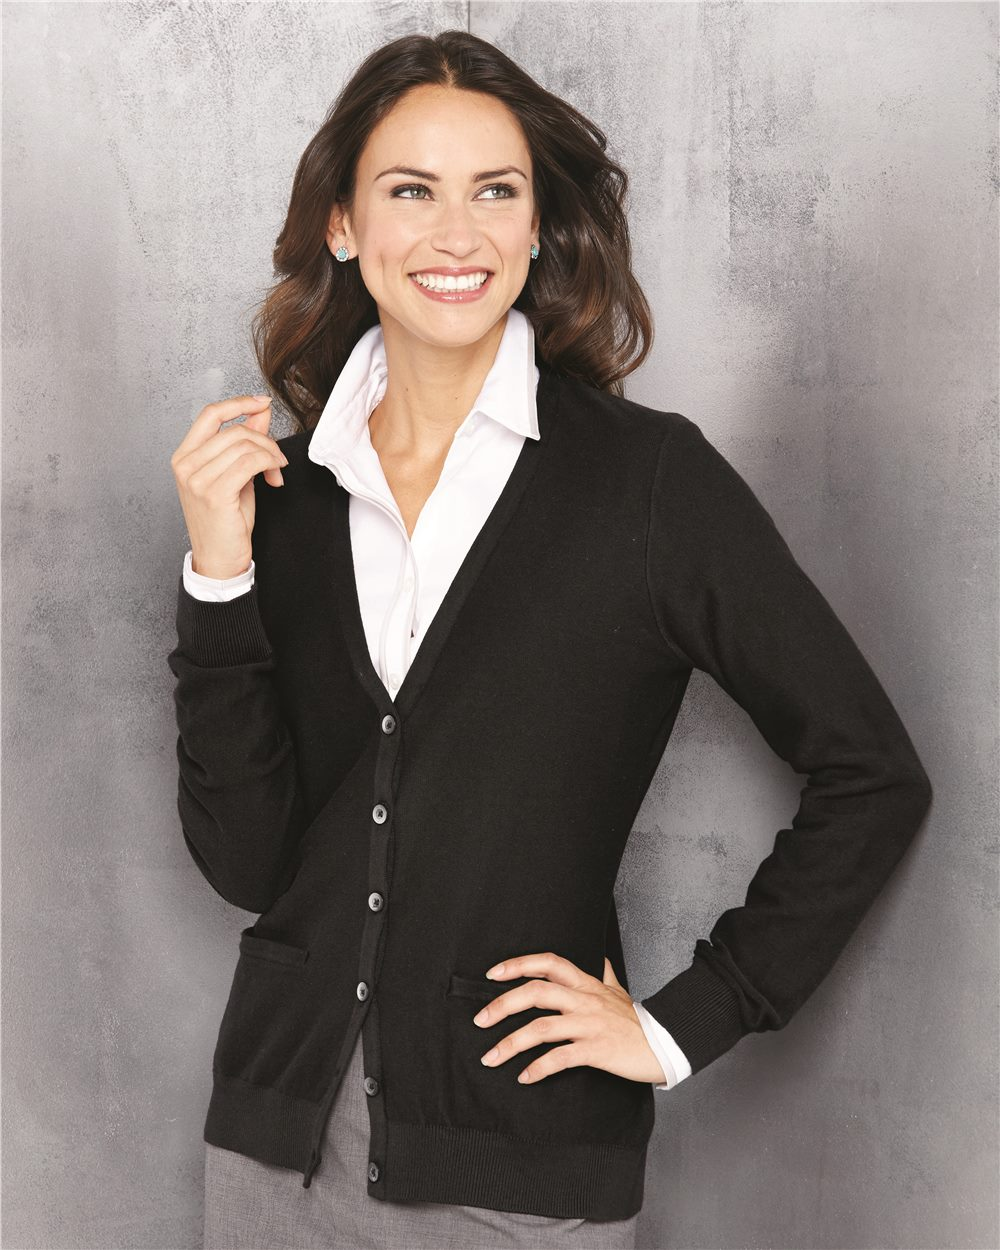 Van Heusen 13VS007 - Women's Cardigan Sweater